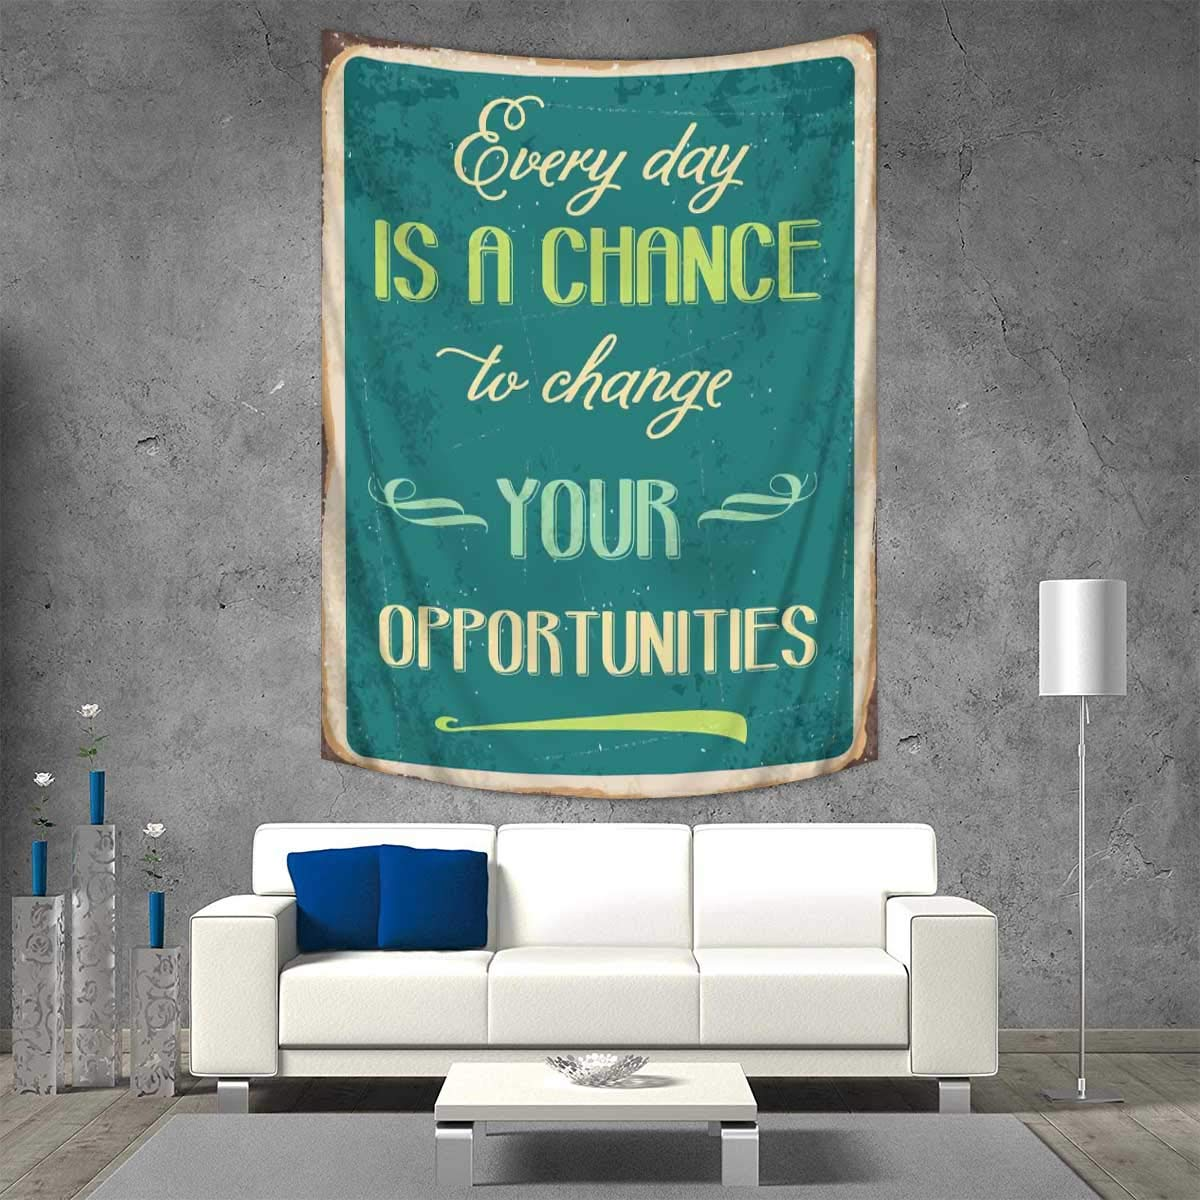 Anhuthree Lifestyle Tapestry Table Cover Bedspread Beach Towel Every Day is a Chance to Change Your Opportunities Quote Retro Poster Print Dorm Decor 54W x 72L INCH Jade Green Tan